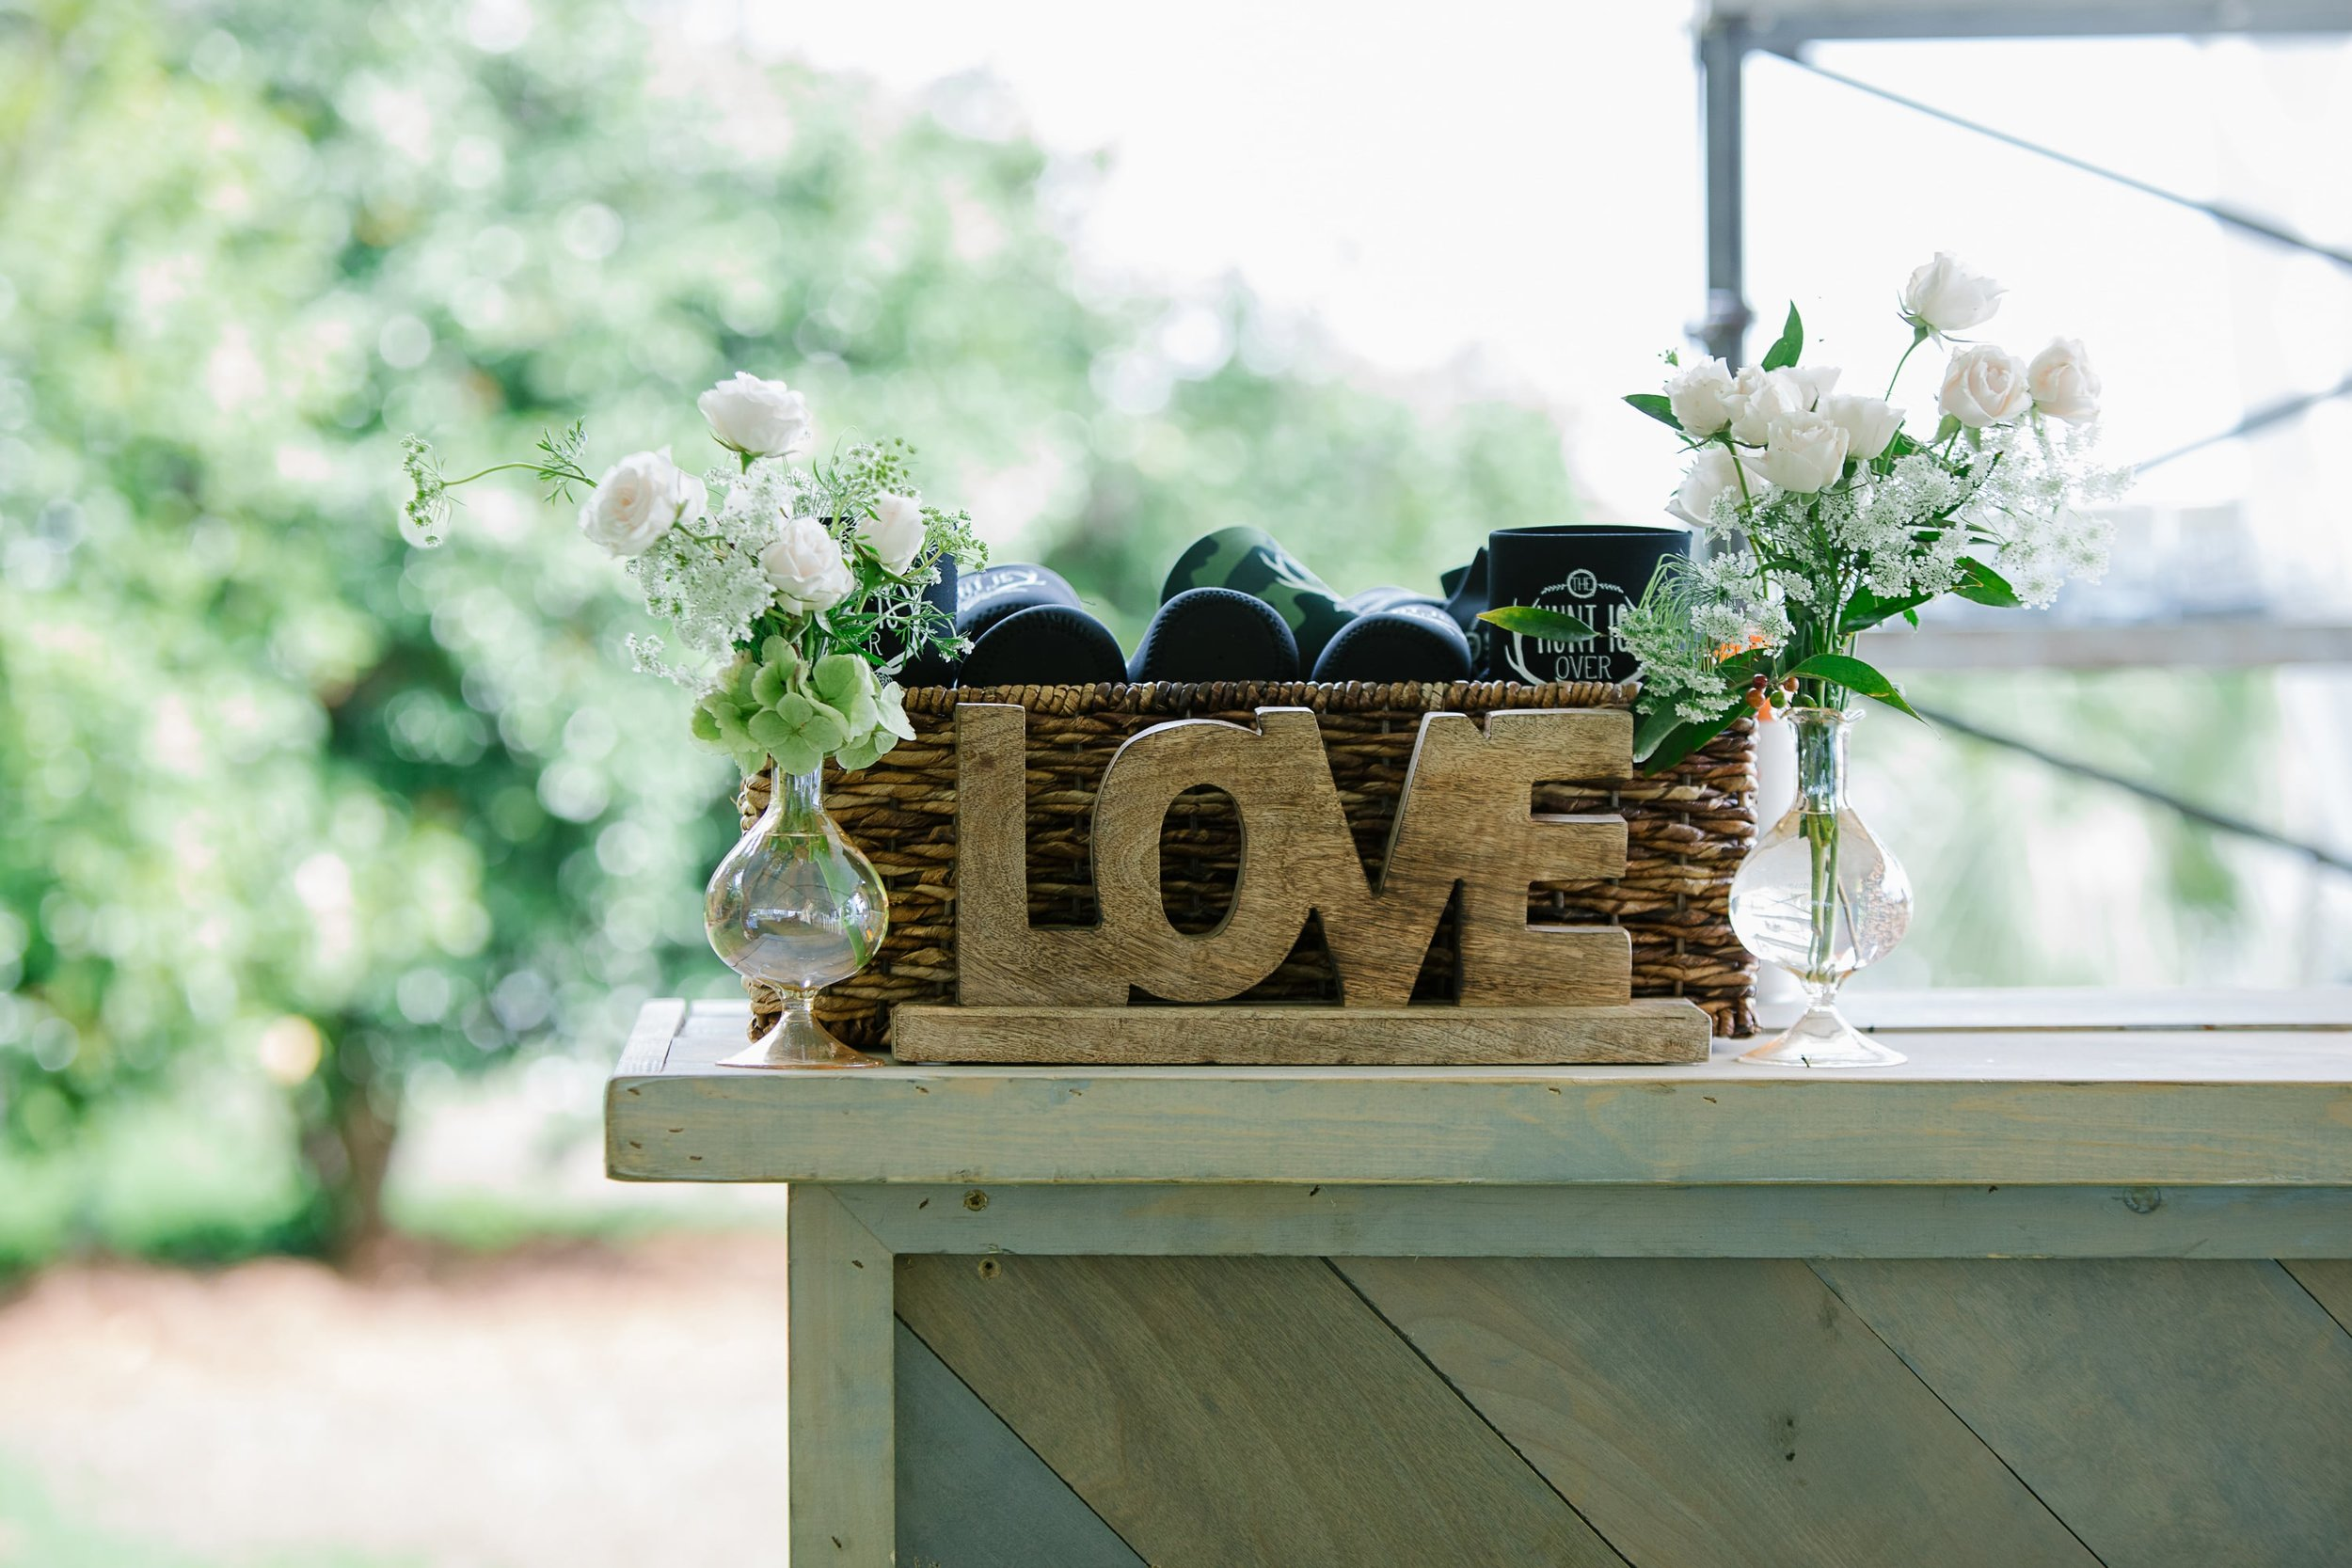 lowcountry-kitchen-catering-beaufort-sc-ben-and-margaret-gross-wedding-love-sign-min.jpg